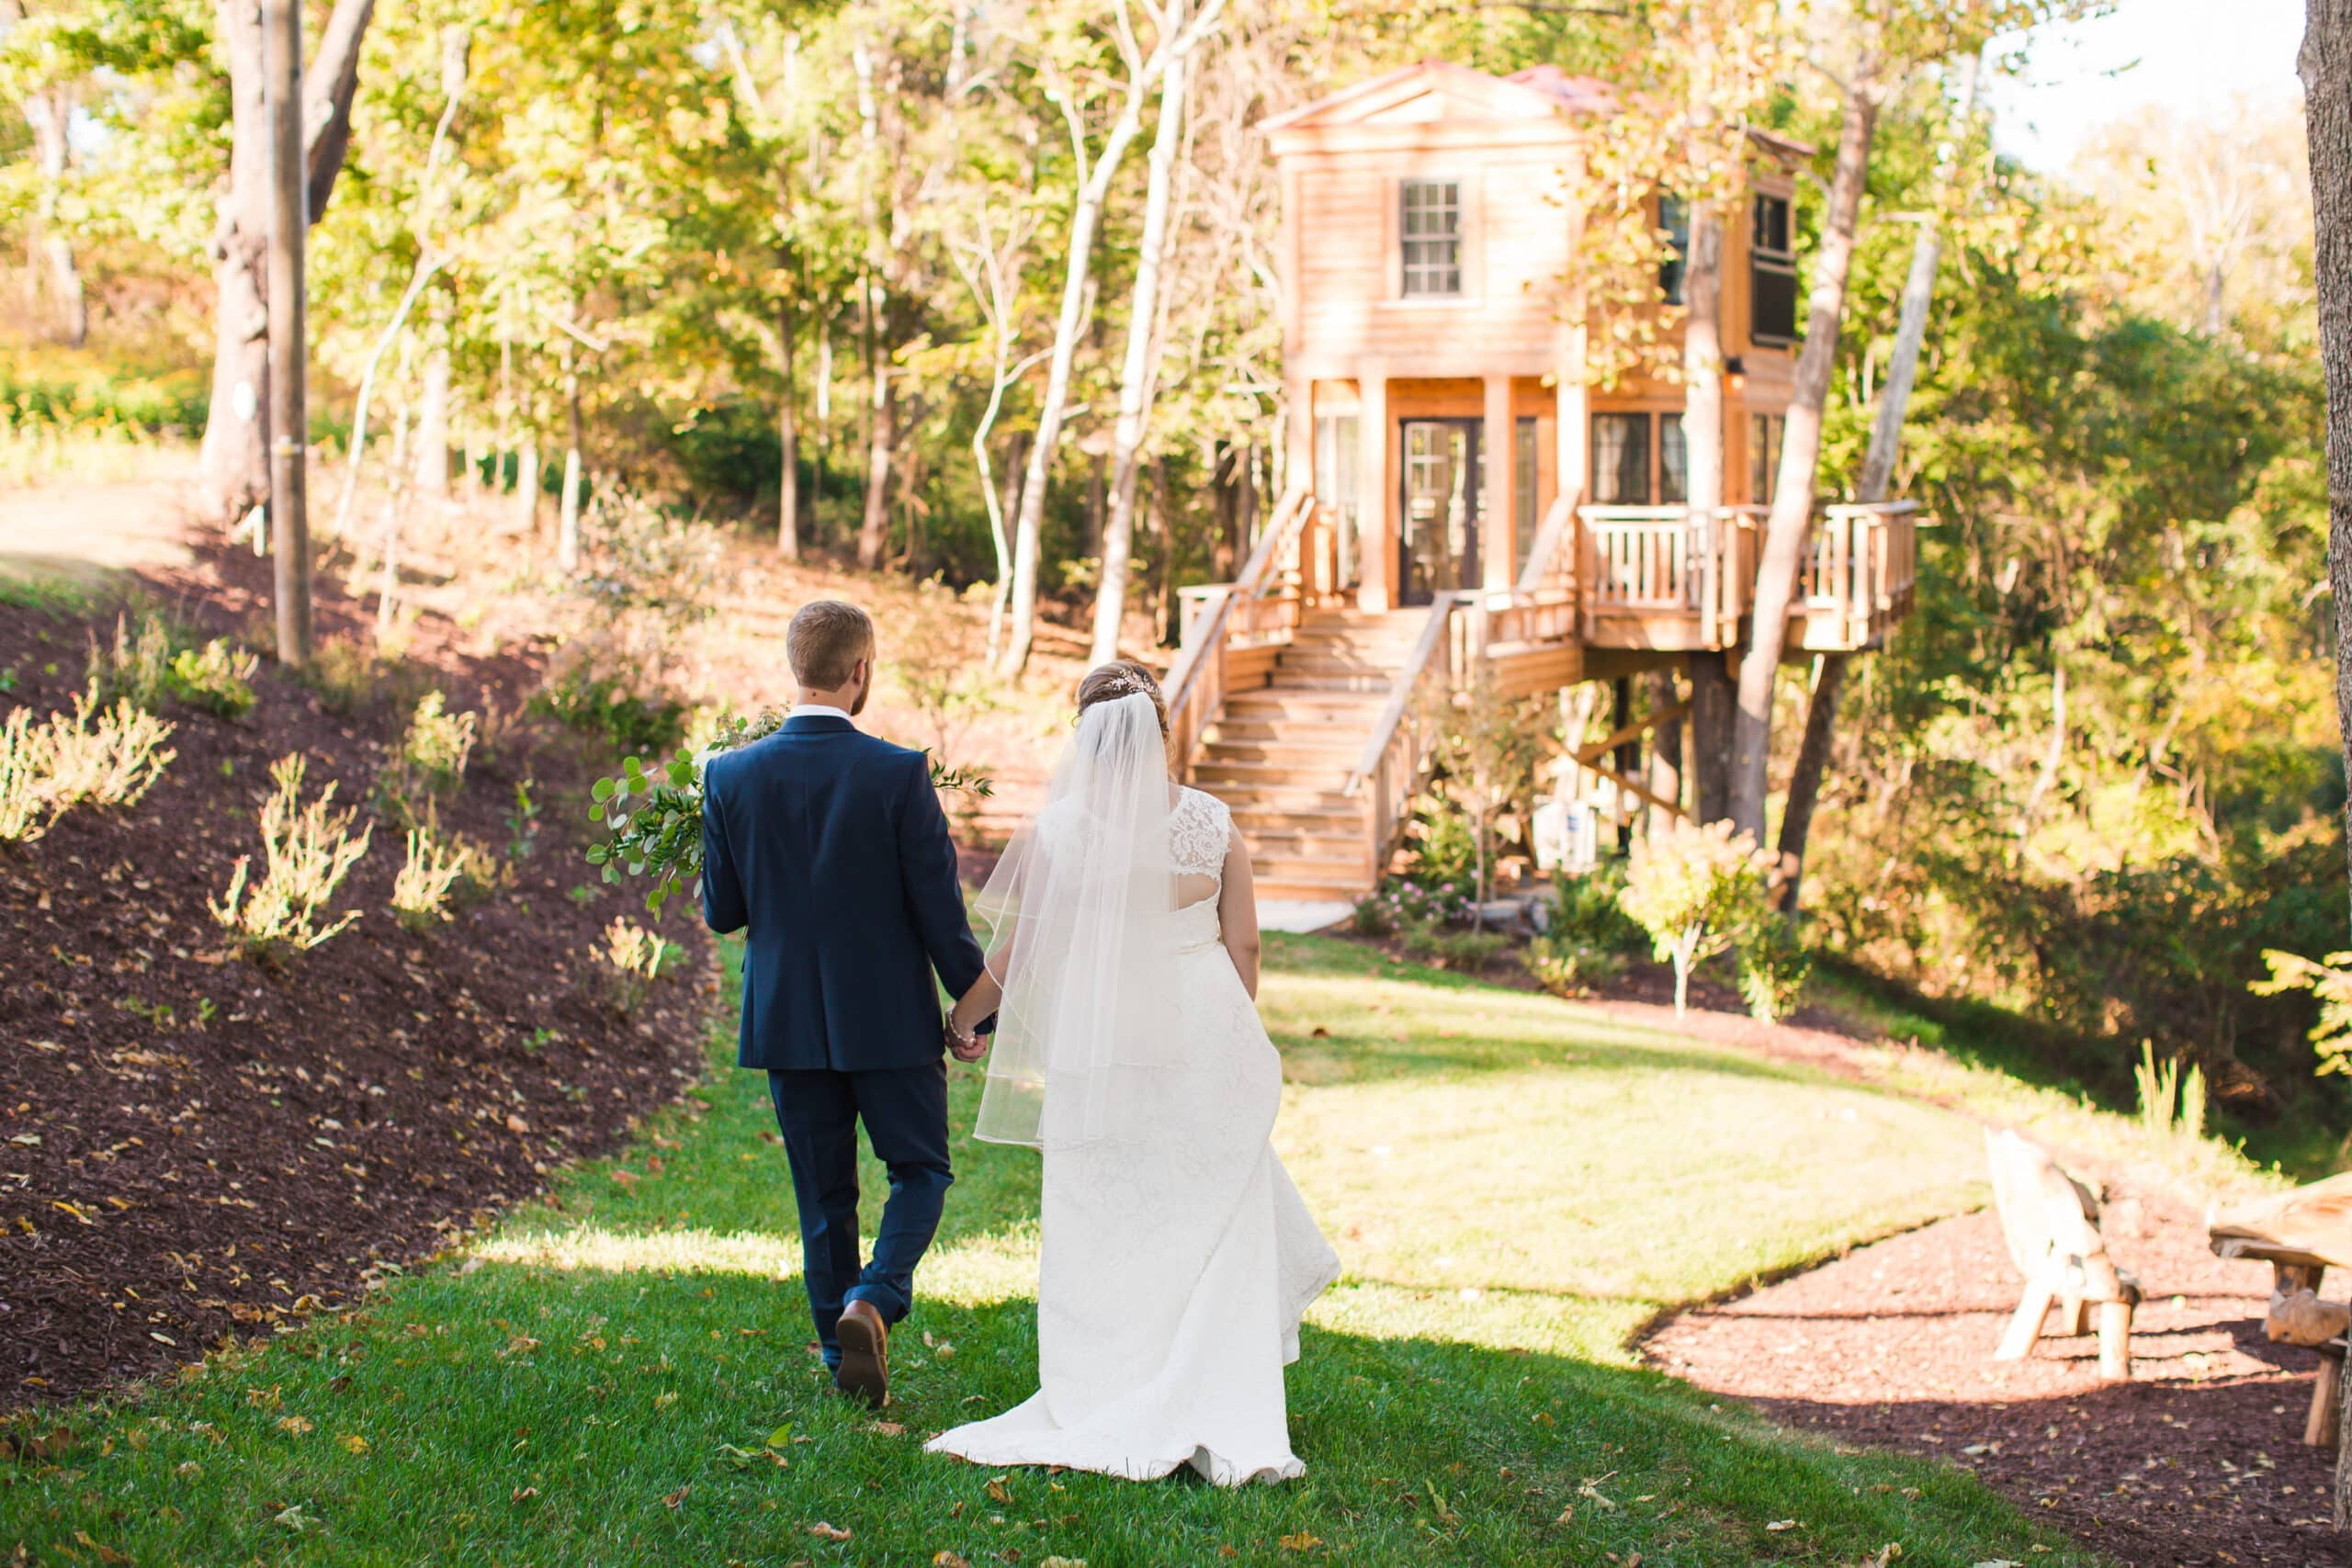 Selecting Your Virginia Wedding Venue | Entwined Events | Venue: Bella Rose Plantation in Lynchburg, VA | Photo Credit: Kidd Photography